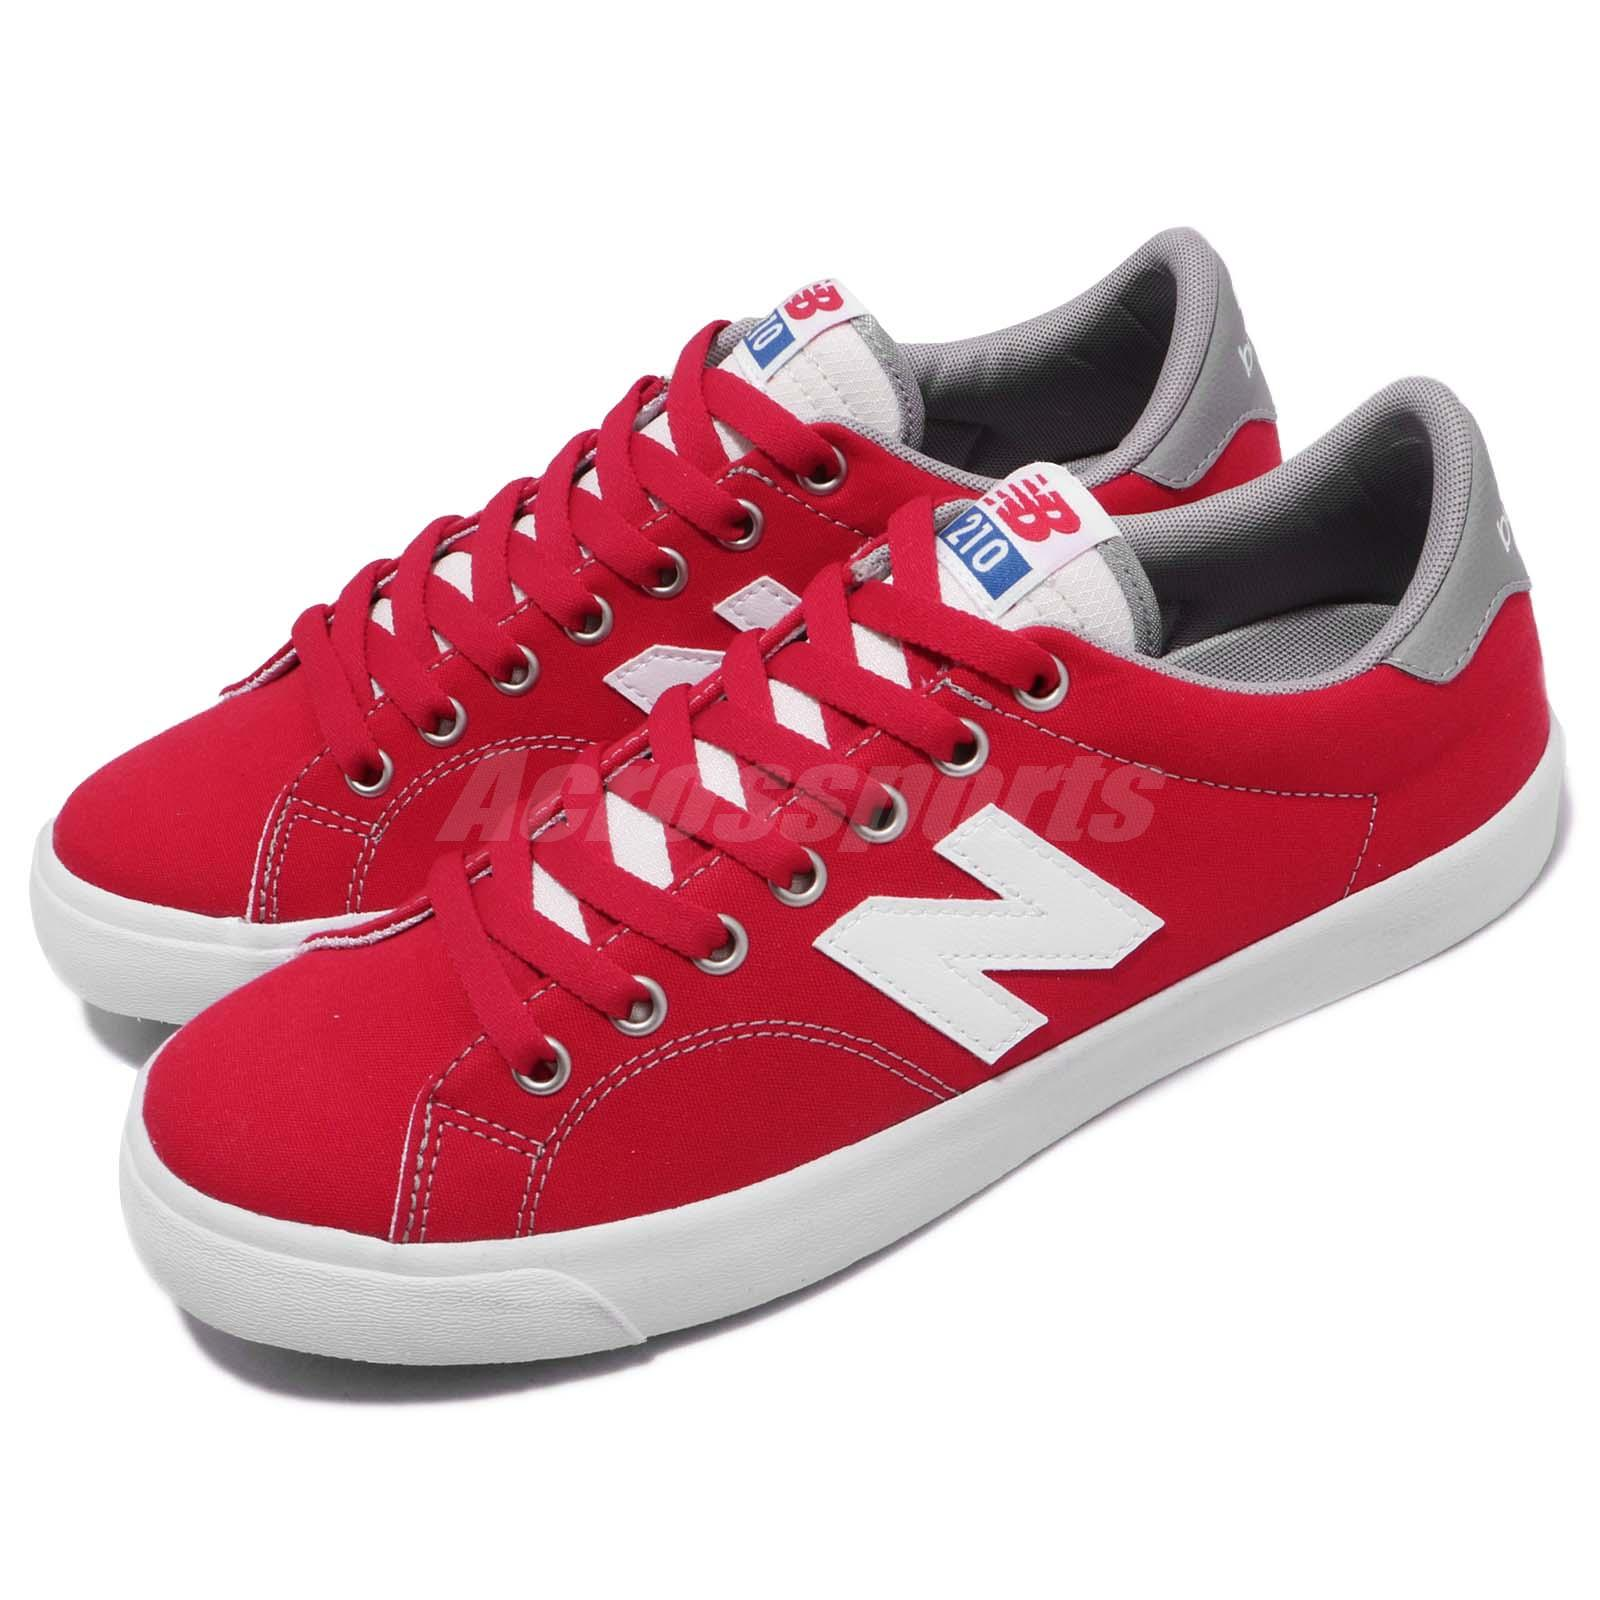 7e271f5aa9ba Details about New Balance AM210CRD D Red White Grey Blue Men Casual Shoes  Sneakers AM210CRDD